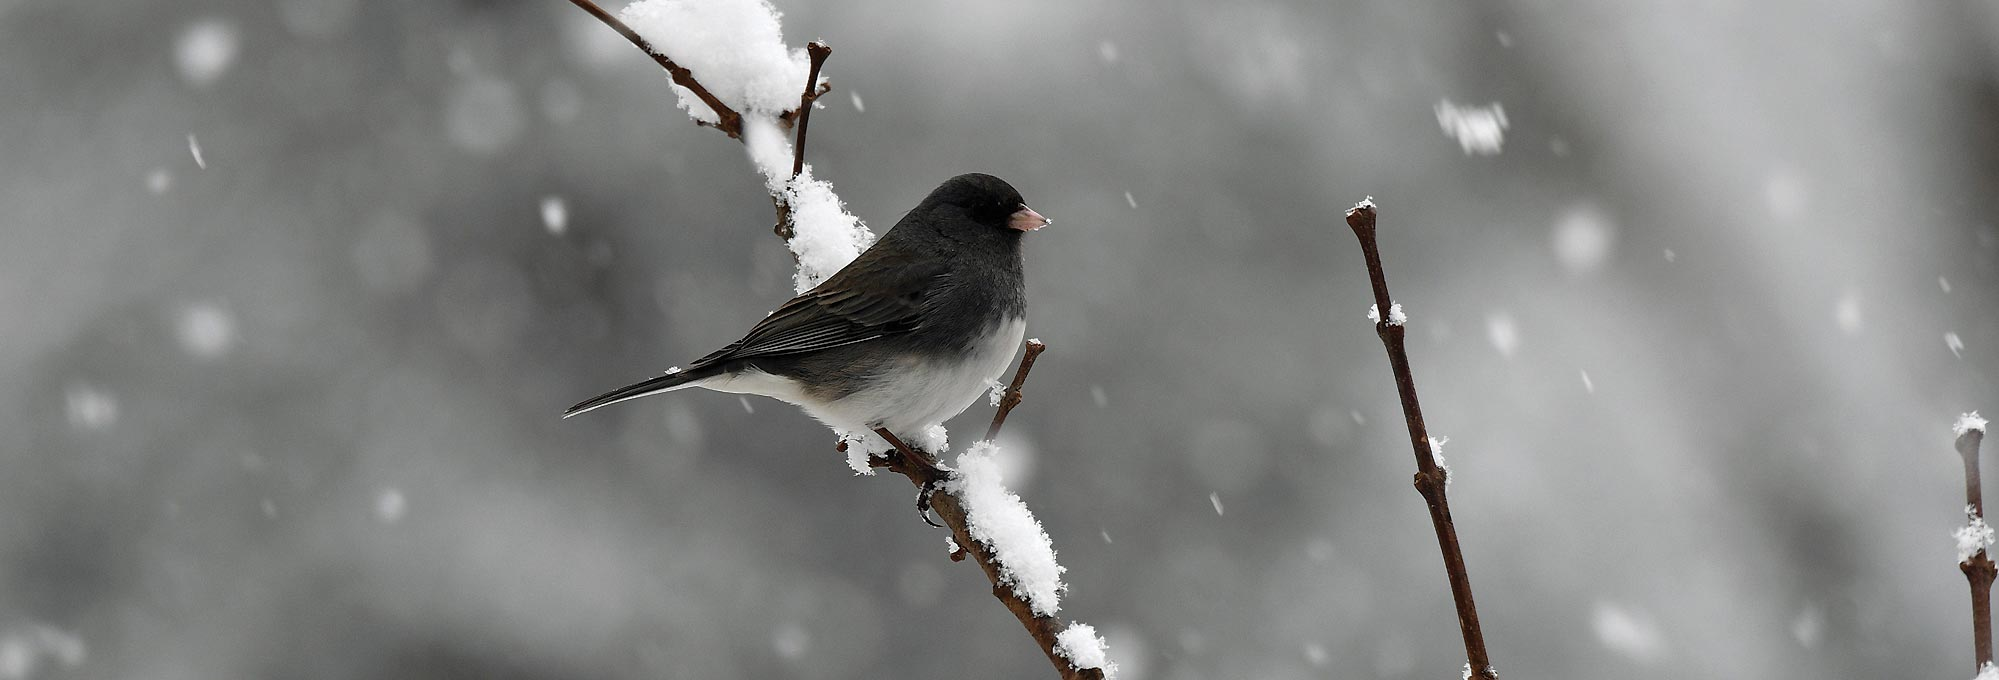 Junco bird in the winter snow by